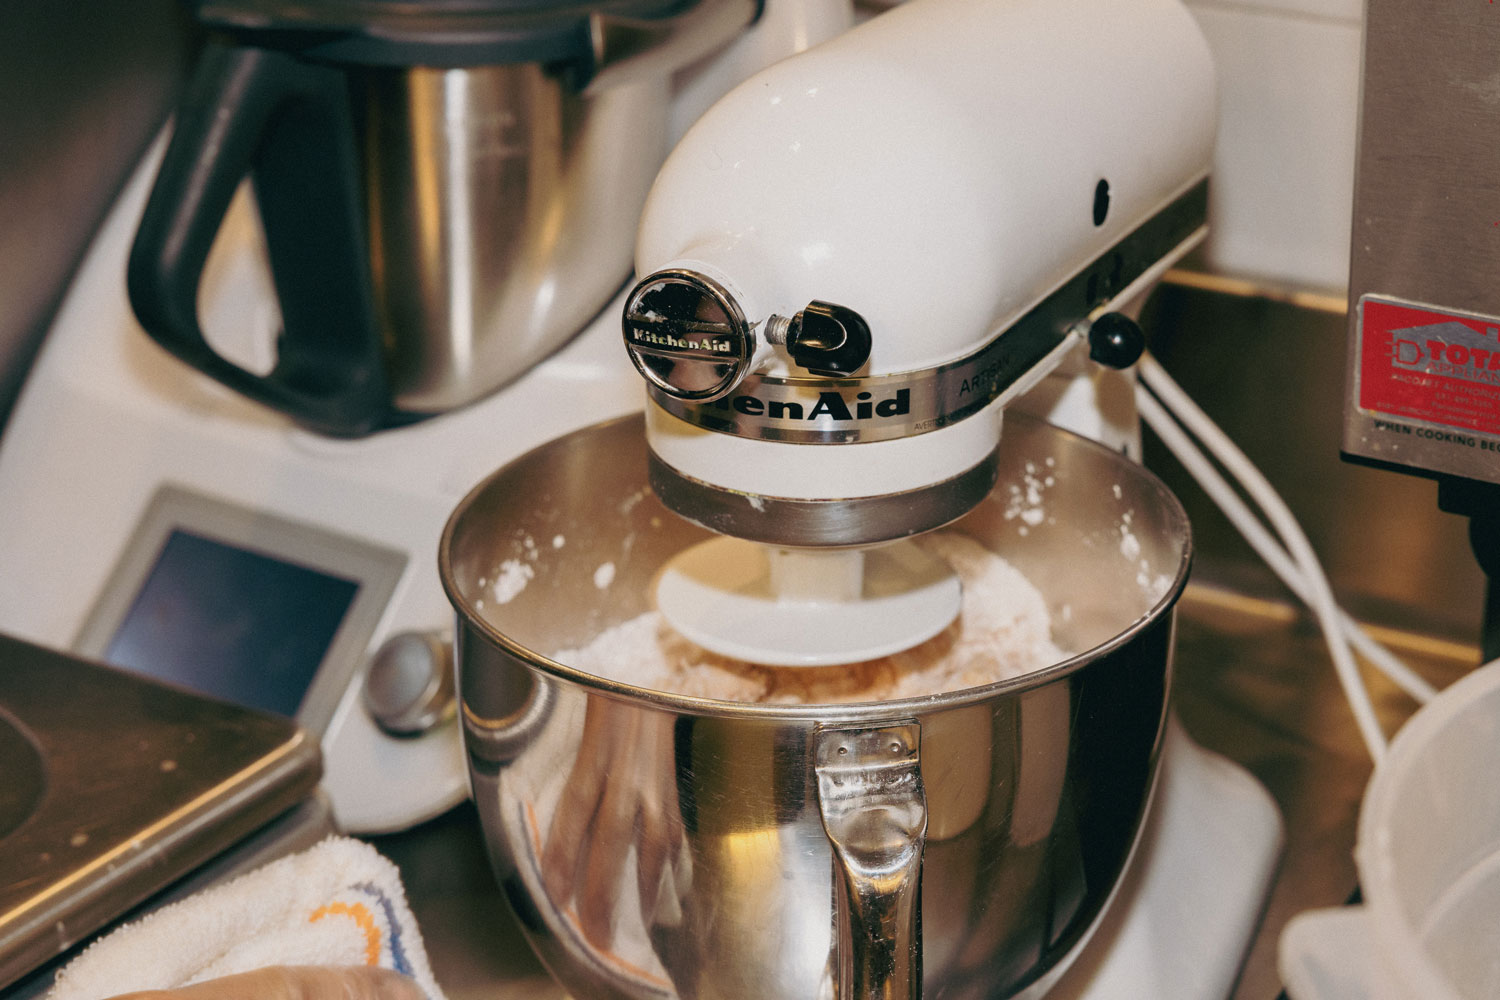 A stand mixer avidly mixing.